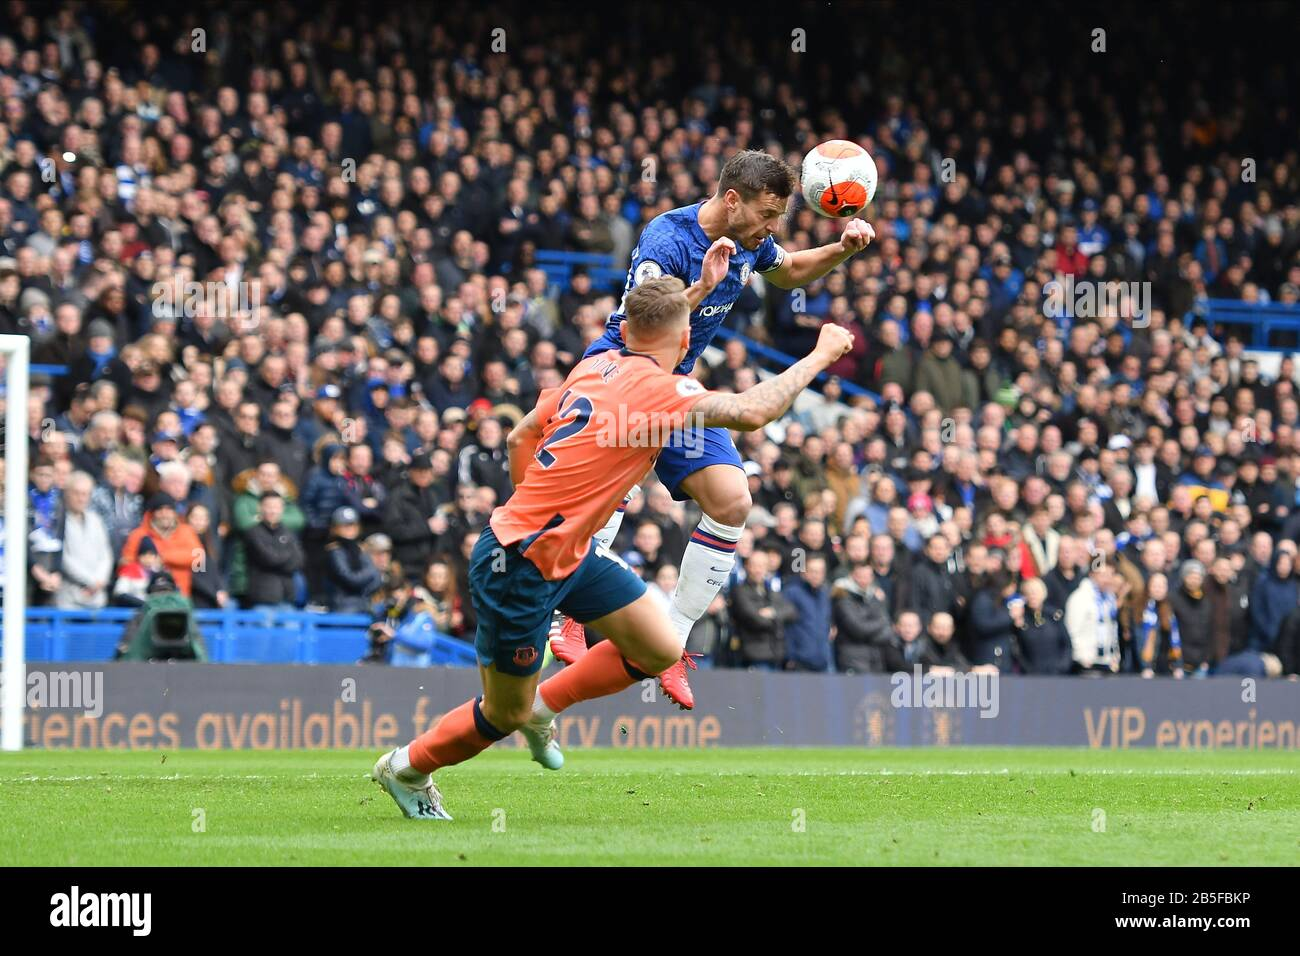 London Uk 8th Mar 2020 Cesar Azpilicueta Of Chelsea Fc Contests A Header With Lucas Digne